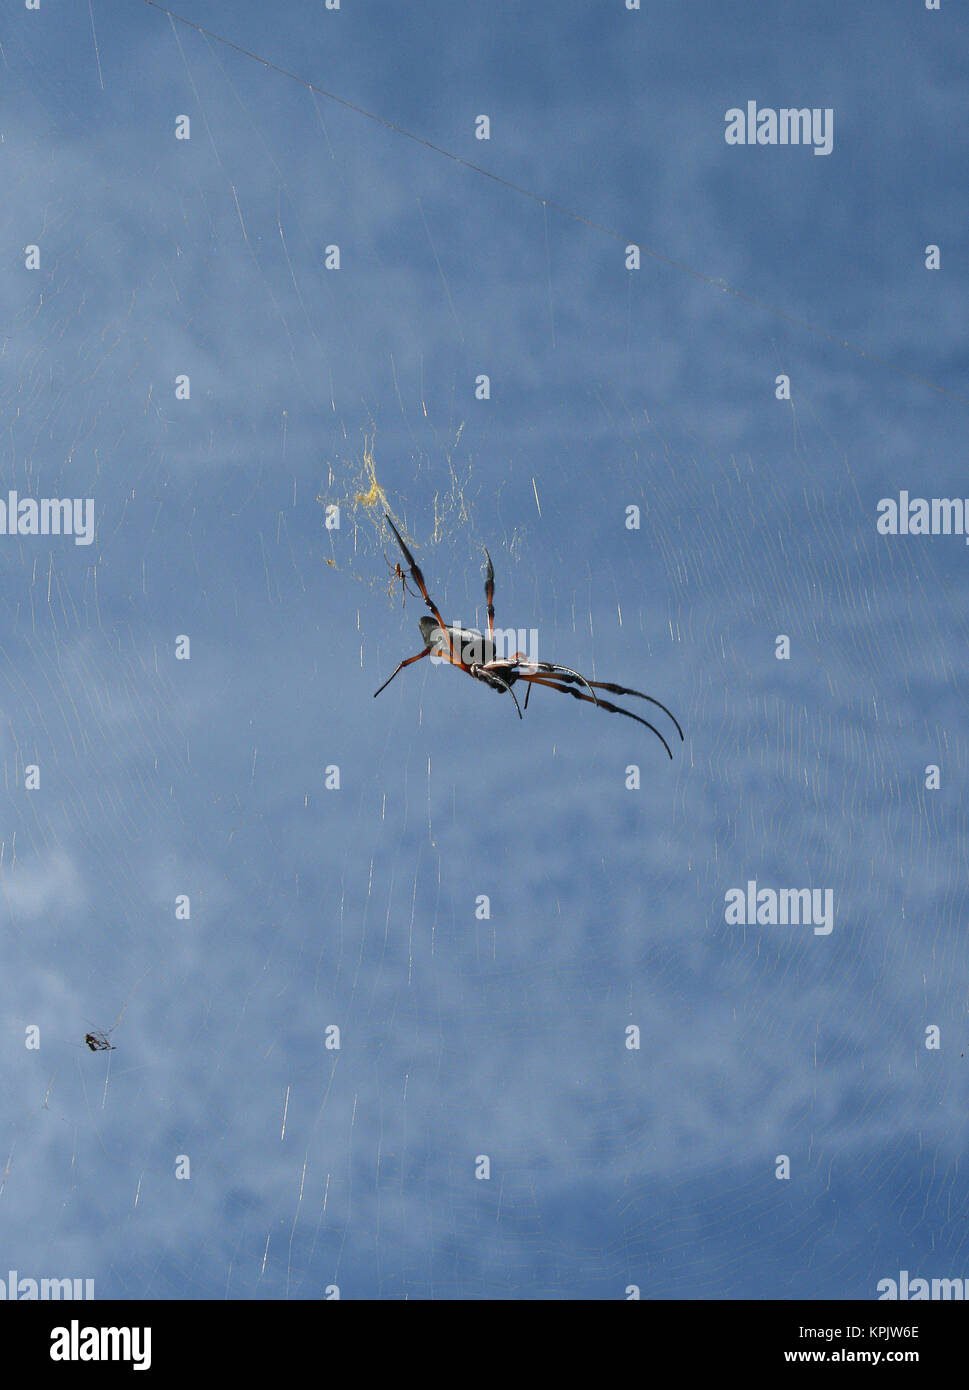 Red-legged golden orb-web spider against partially cloudy blue sky, La Digue Island, Seychelles. - Stock Image